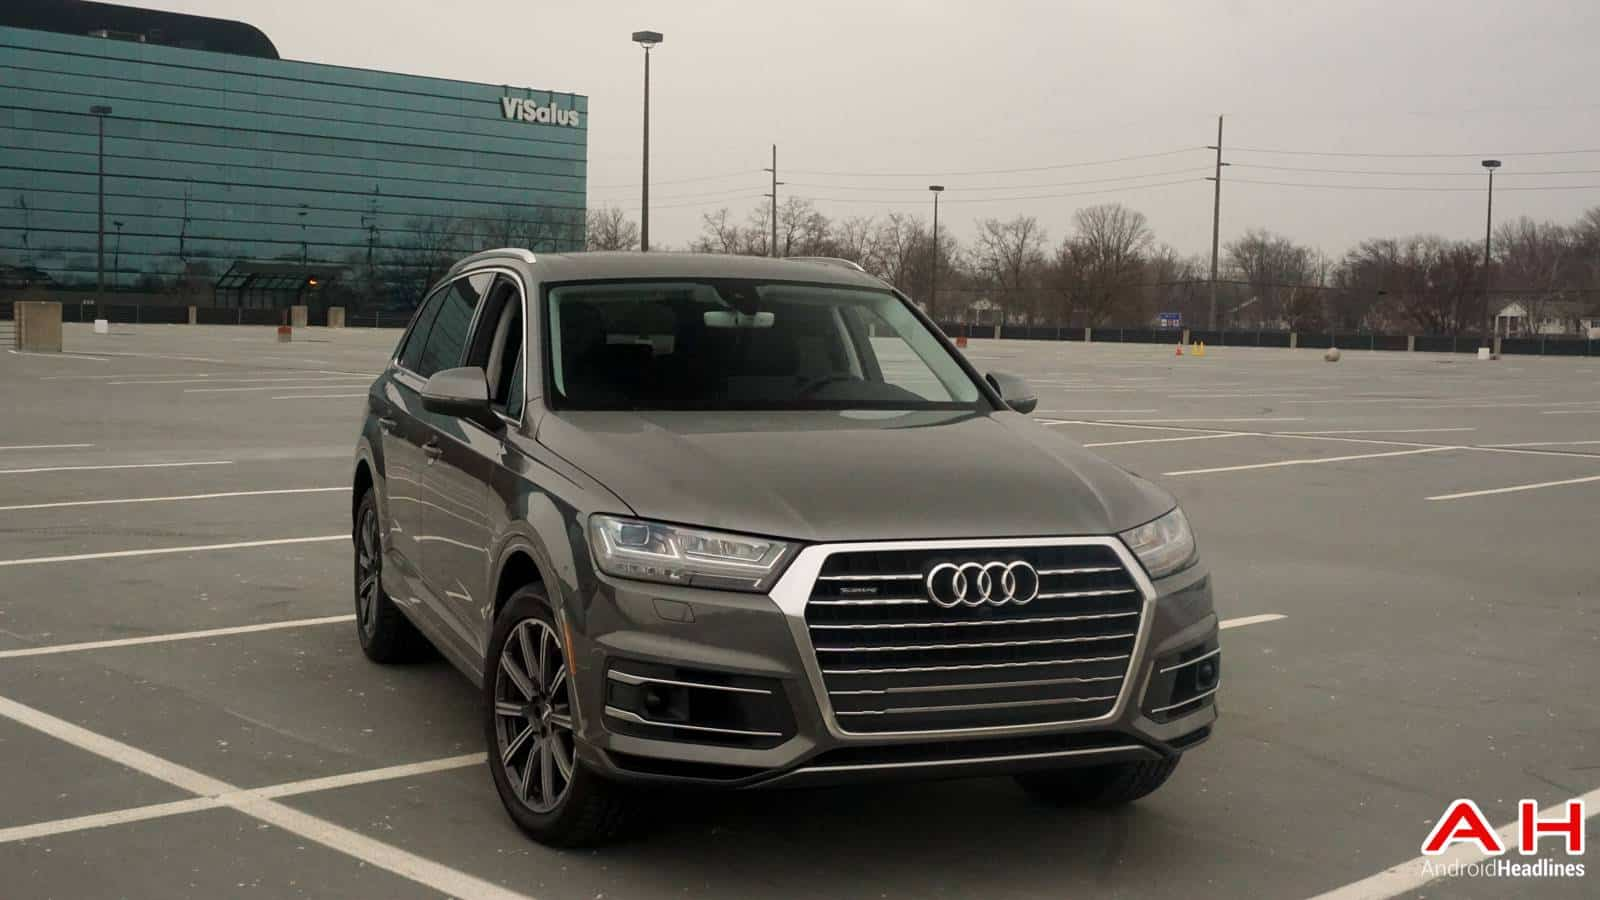 2017-Audi-Q7-Review-AH-00058